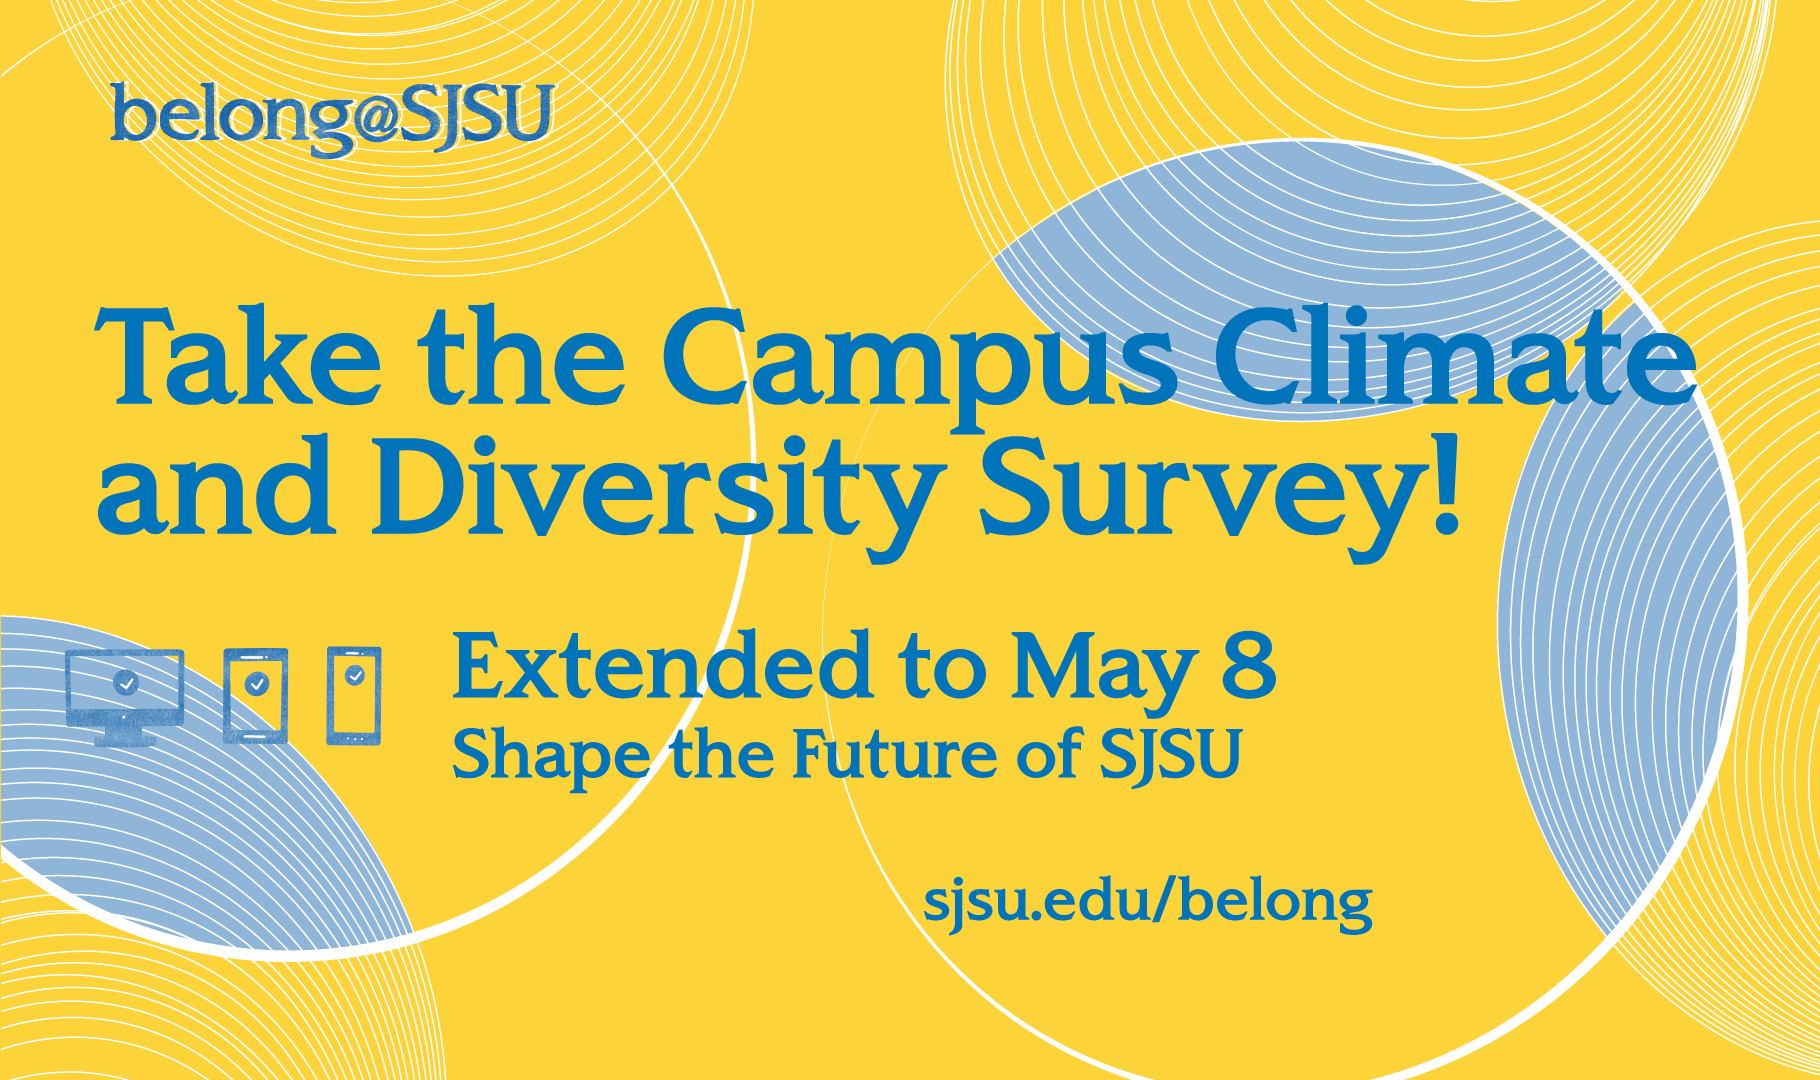 Take the campus climate survey ad.